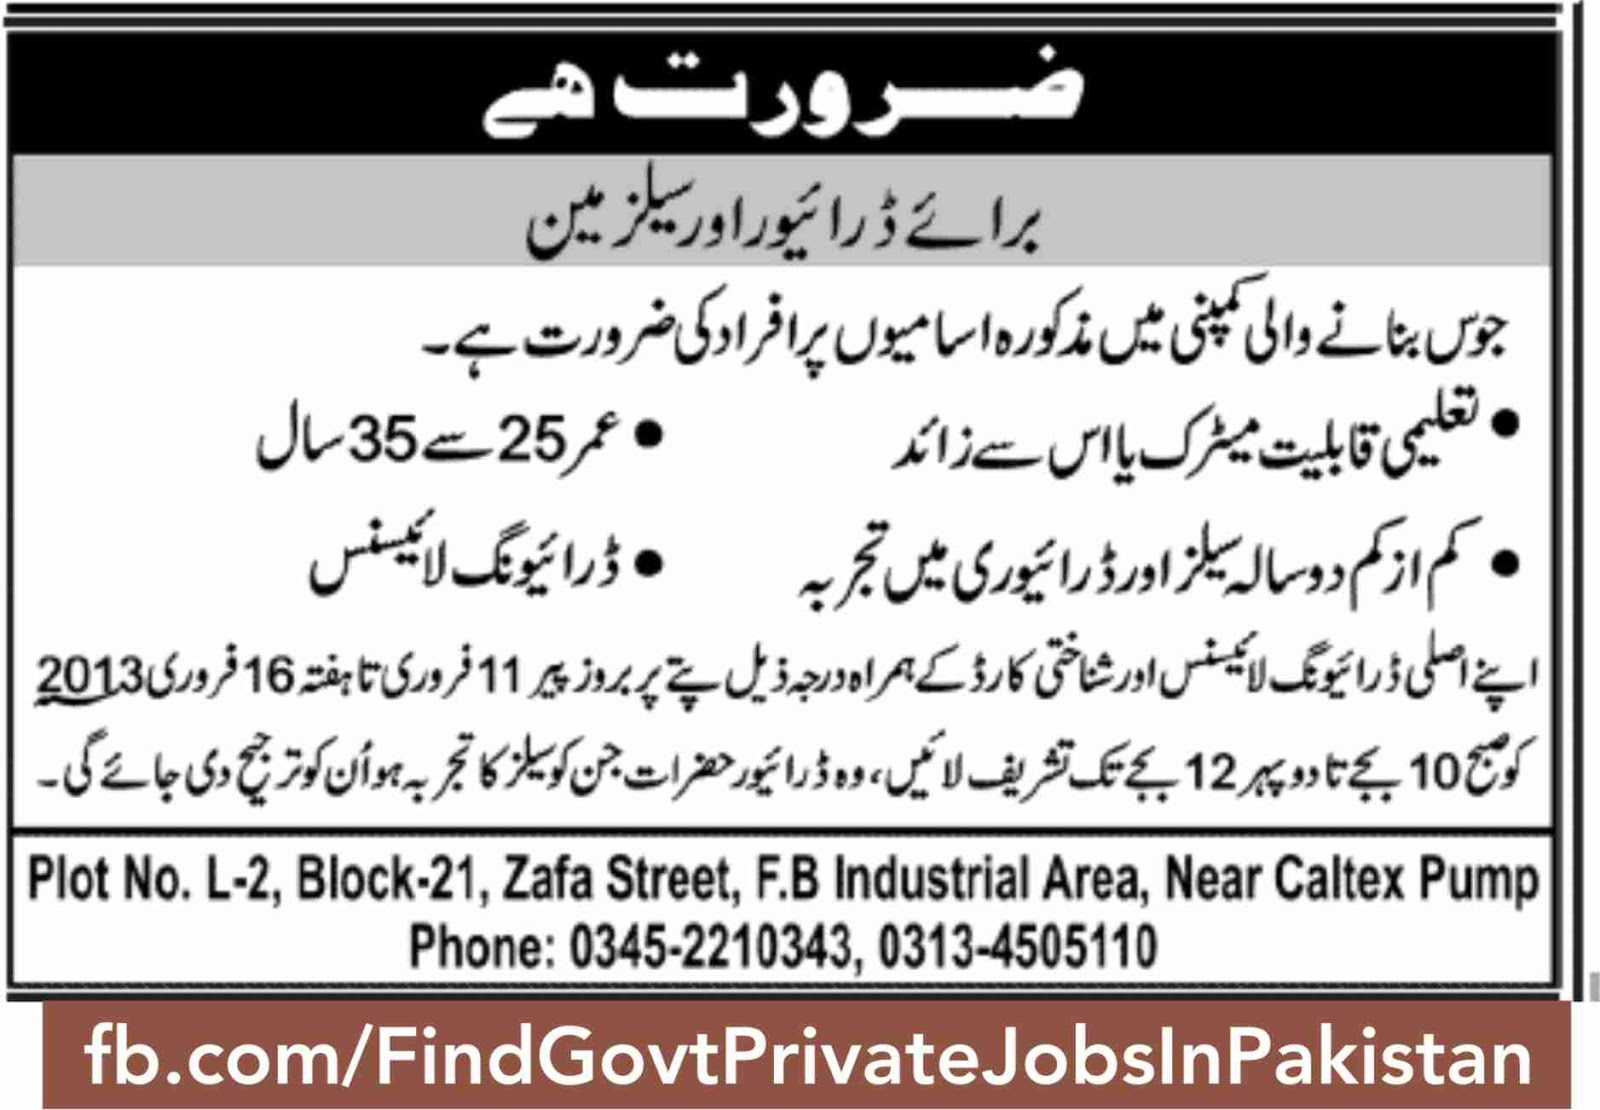 sunday job ads jang